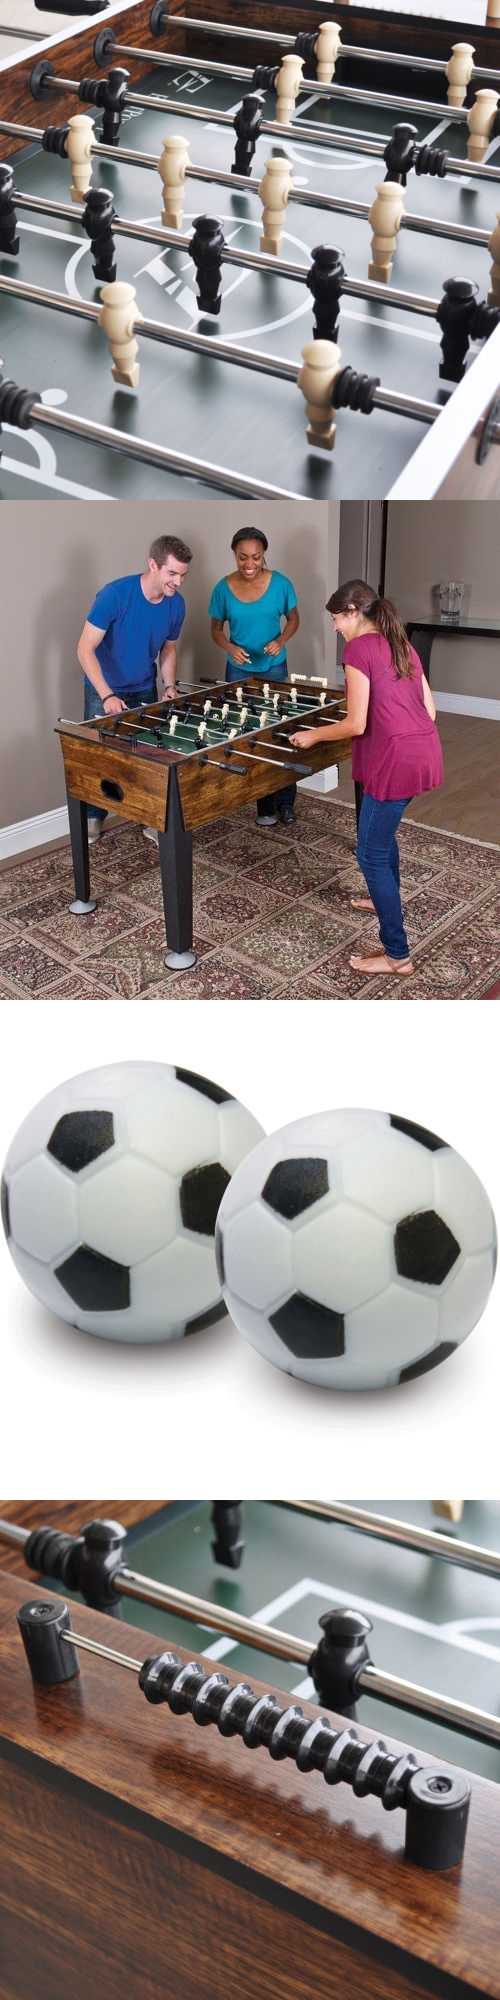 Foosball Eastpoint Sports Newcastle Foosball Table BUY IT - Newcastle foosball table